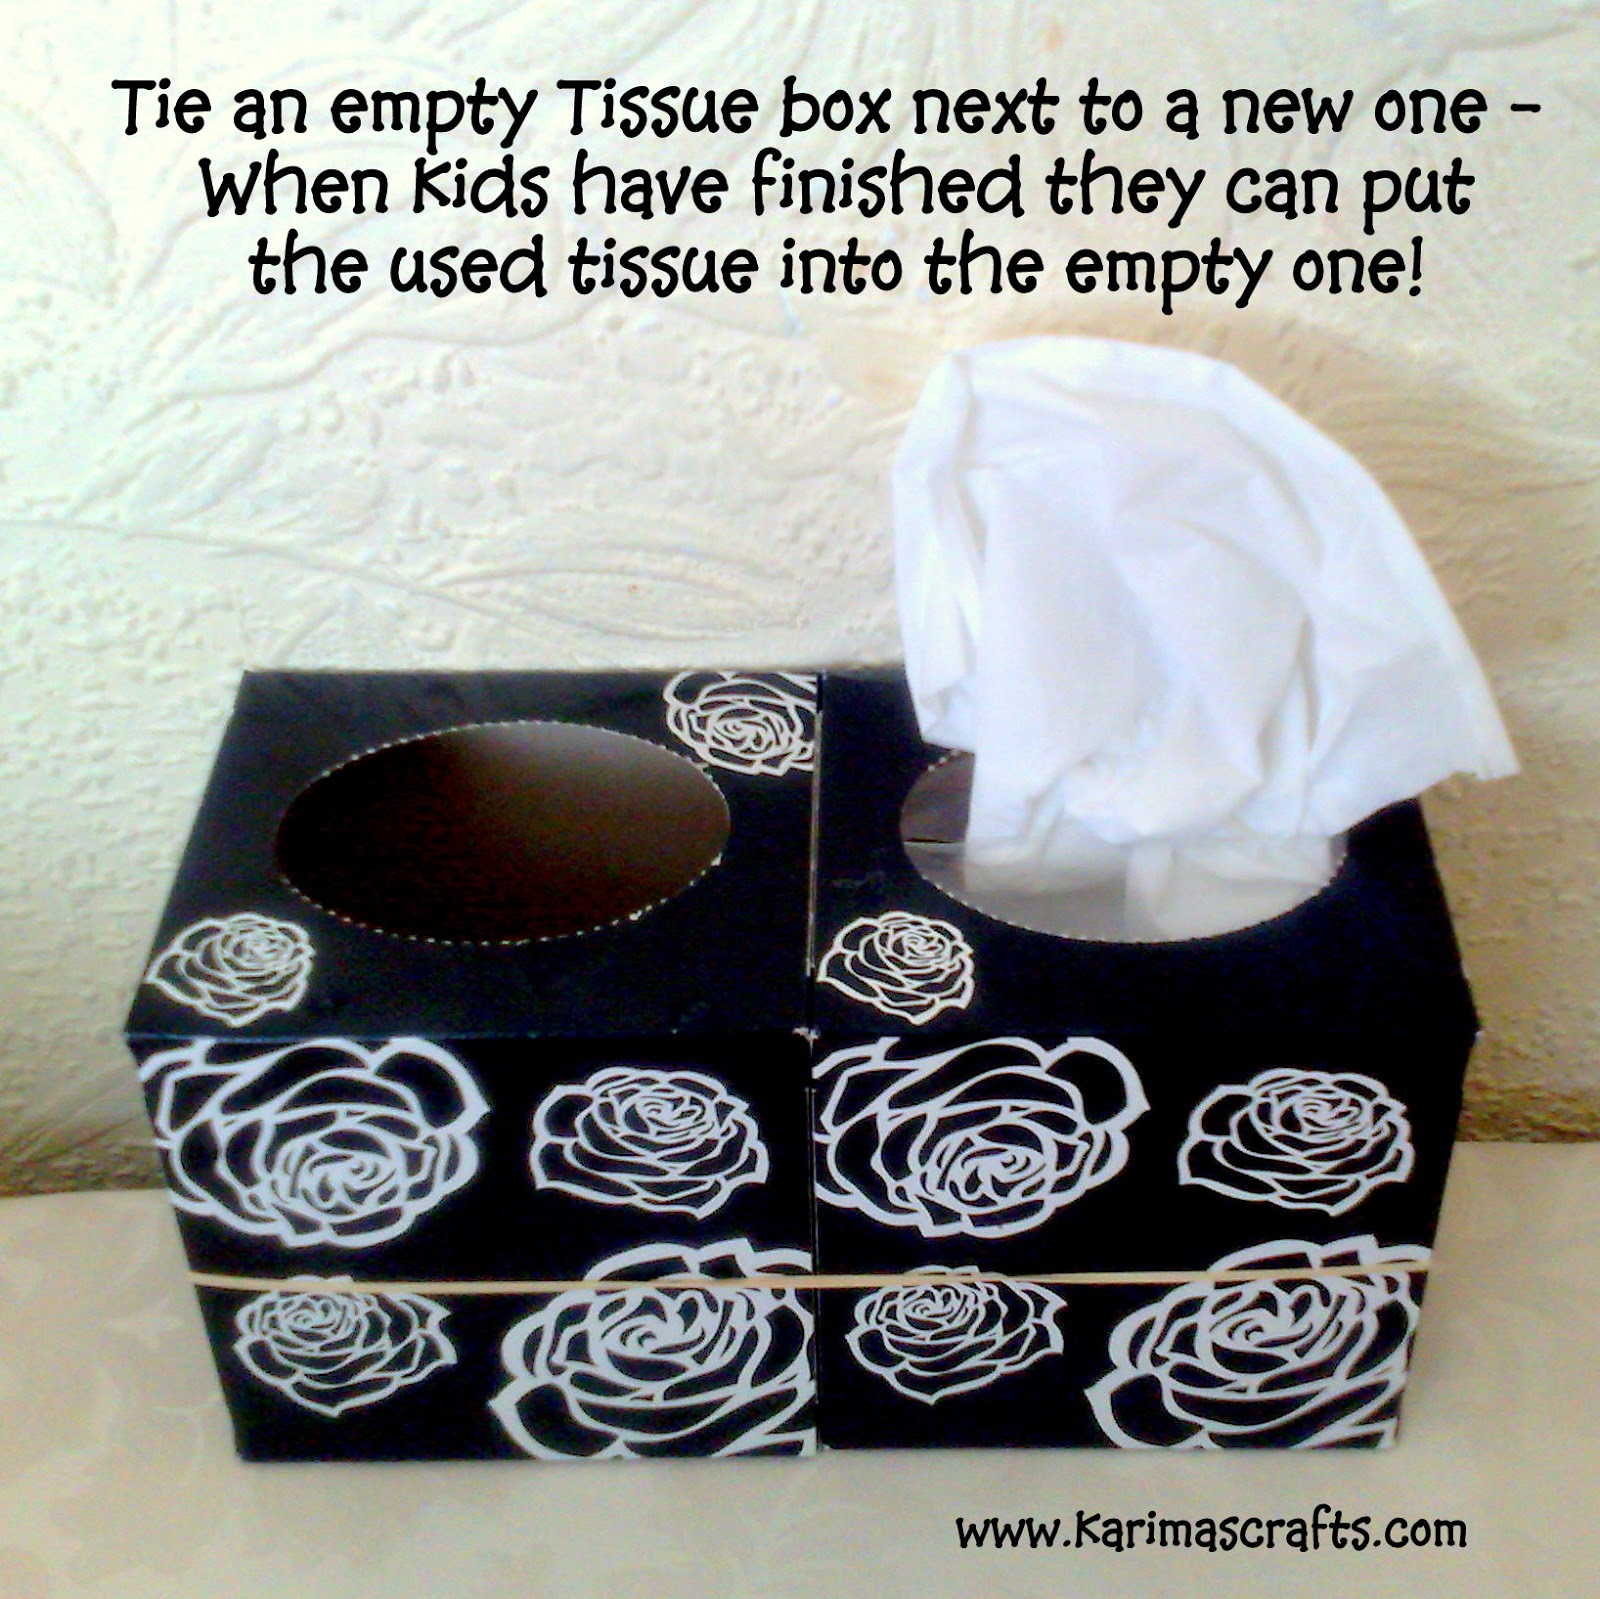 Used Tissues Bin great ideas muslim blog